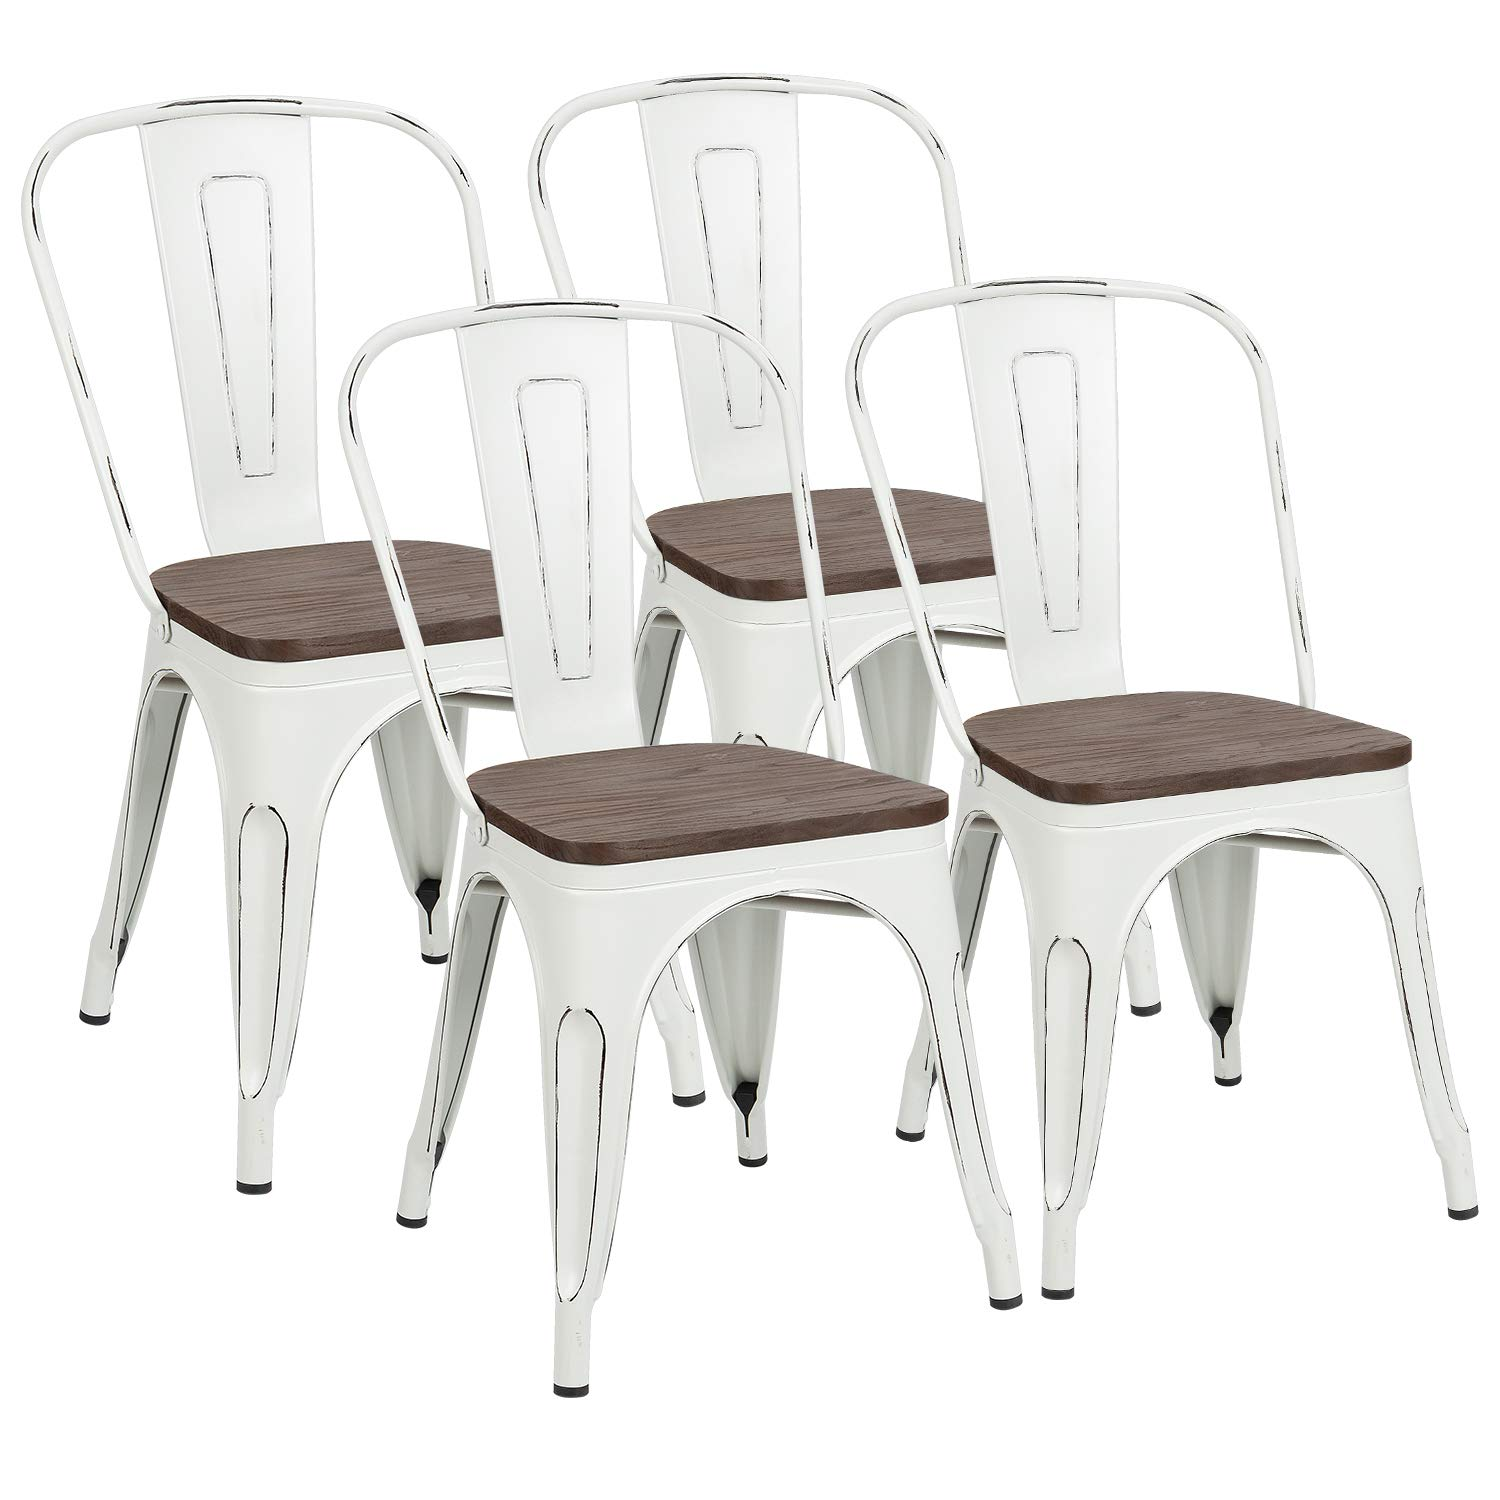 Metal Dining Chairs with Wood Seat, Distressing Tolix Style Indoor-Outdoor Stackable Industrial Chair with Back Set of 4 for Kitchen, Dining Room, Bistro and Cafe (White) by Furniwell